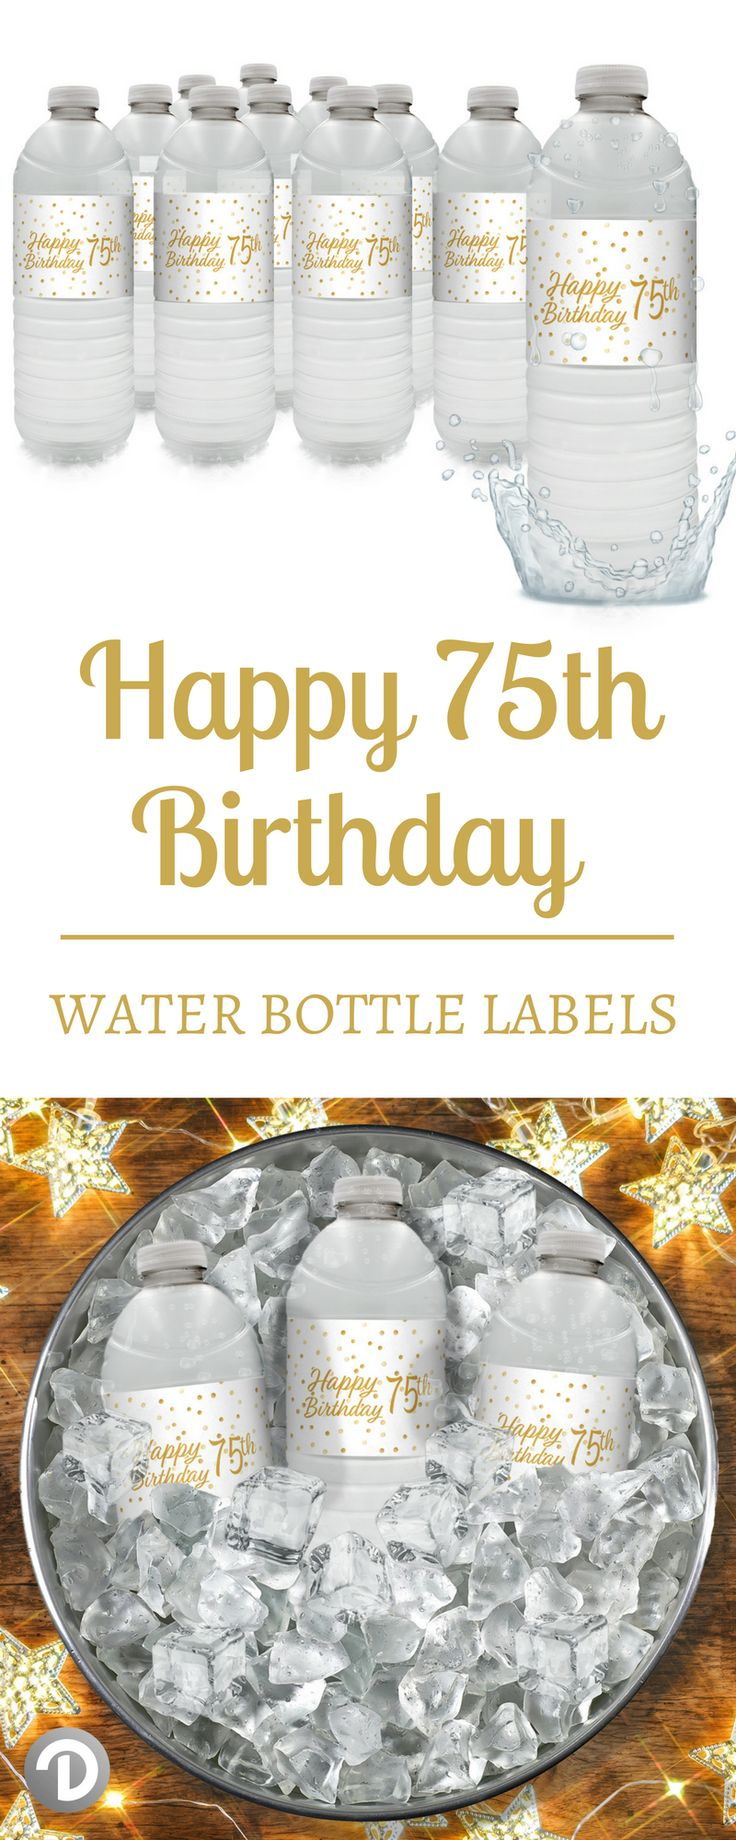 These white and gold75th BirthdayWater Bottle Labelsare the perfect refreshment decorations for your upcoming 75th birthday party. #whiteandgold #goldbirthday #75birthday #75th #partyidea #partydecor #whiteandgoldpartydecor